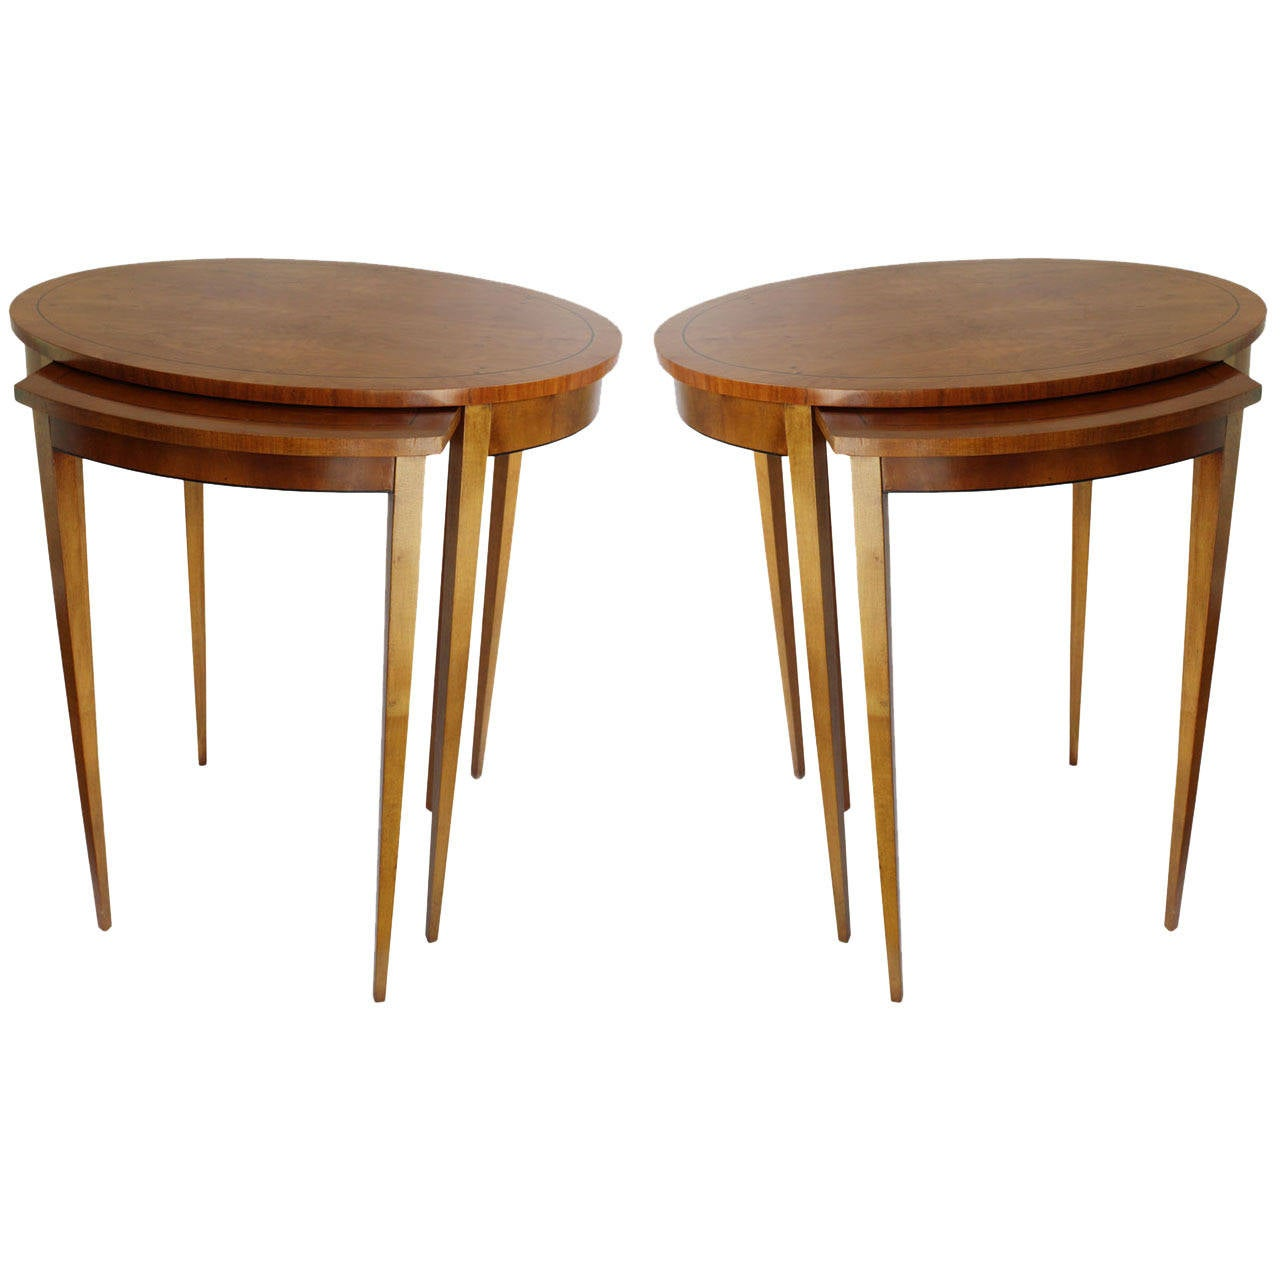 Pair Of Baker Nesting Side Tables At 1stdibs. Full resolution  image, nominally Width 1280 Height 1280 pixels, image with #AC5410.